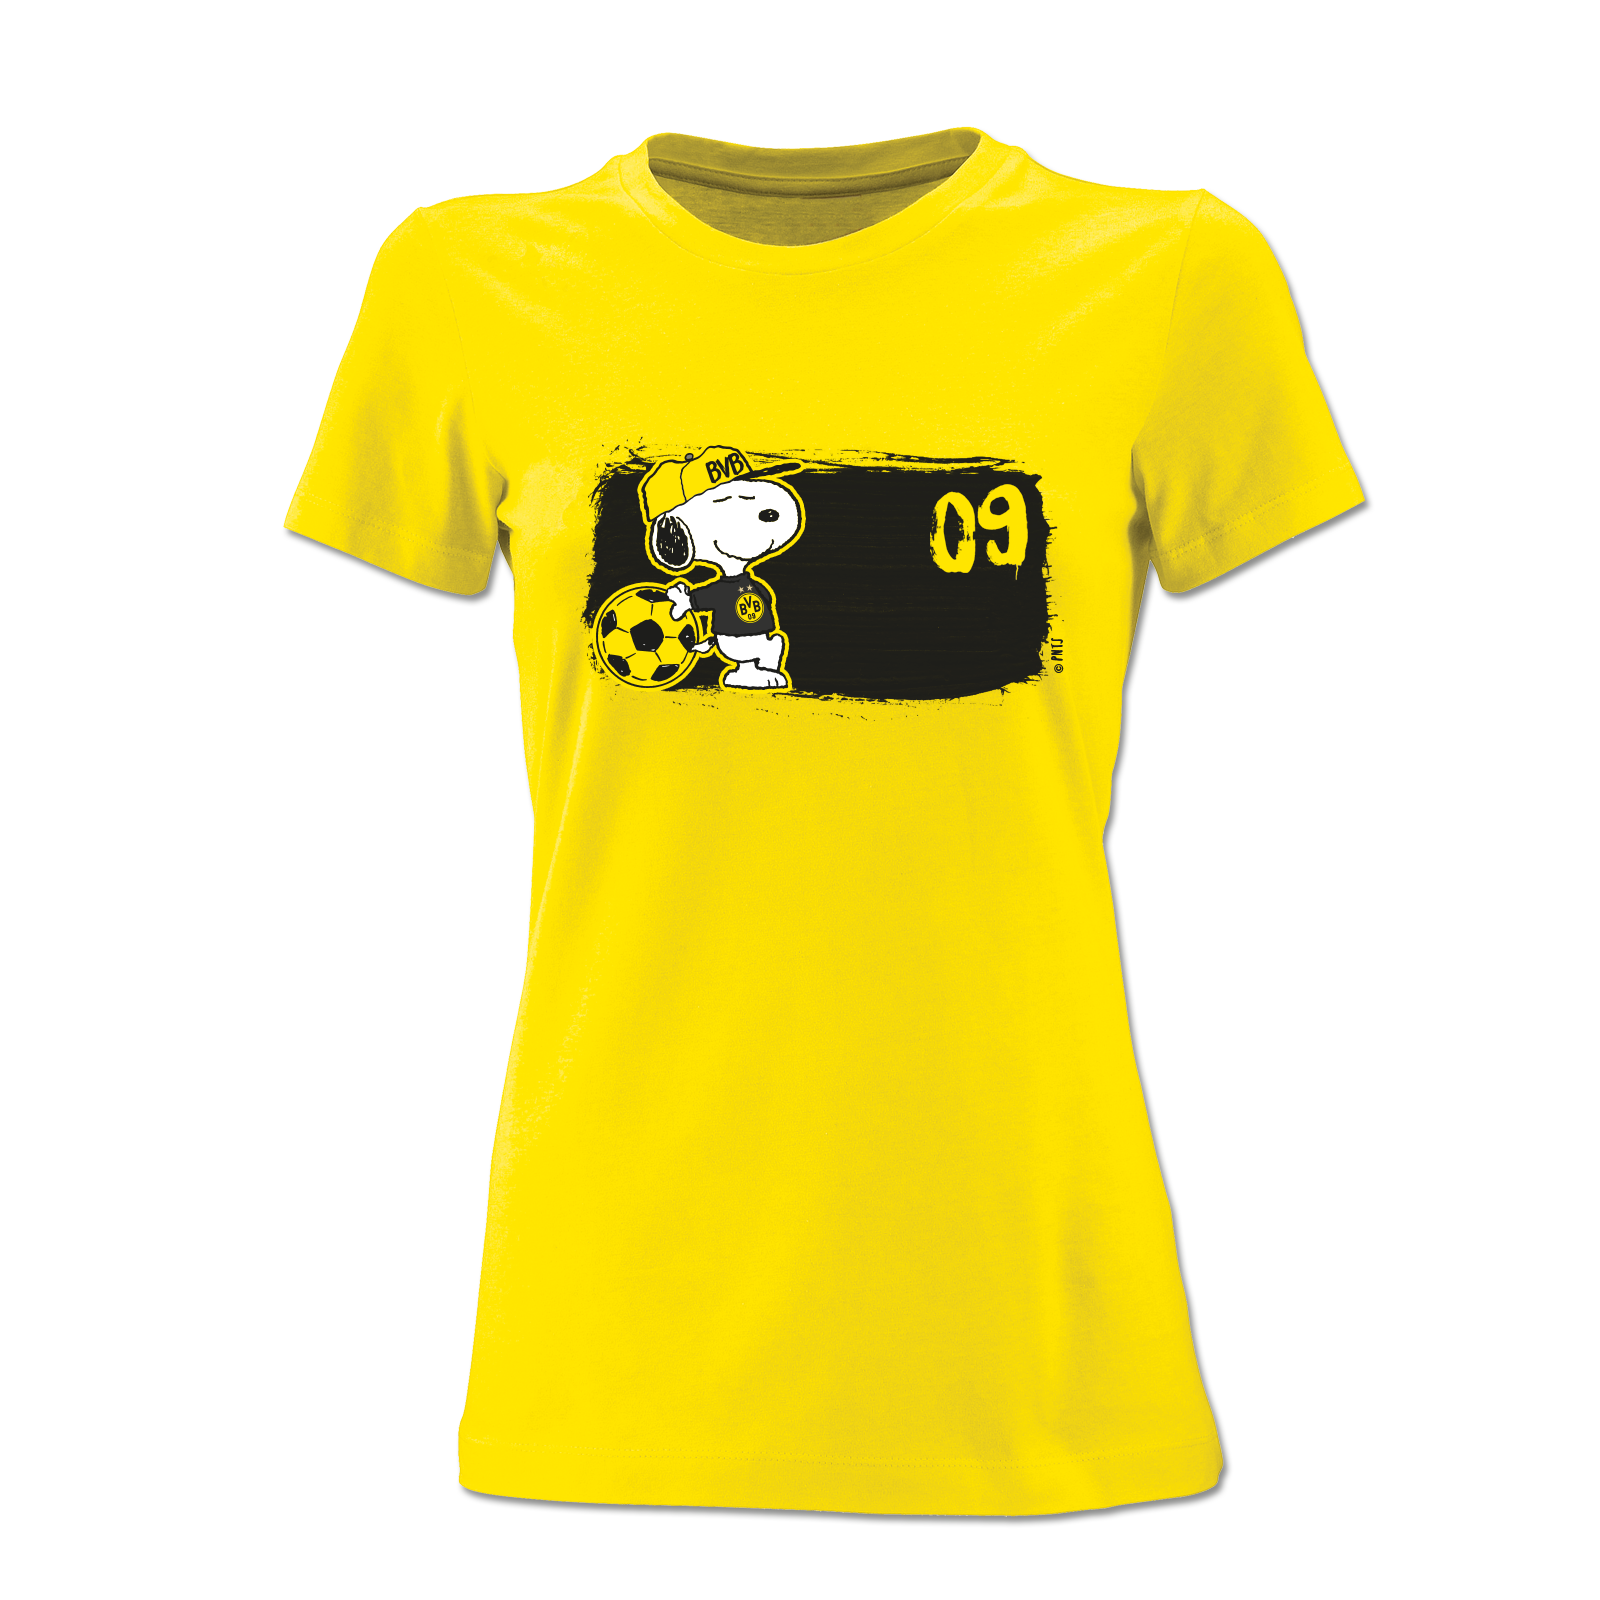 bvb snoopy t shirt f r frauen gelb trikots shirts. Black Bedroom Furniture Sets. Home Design Ideas